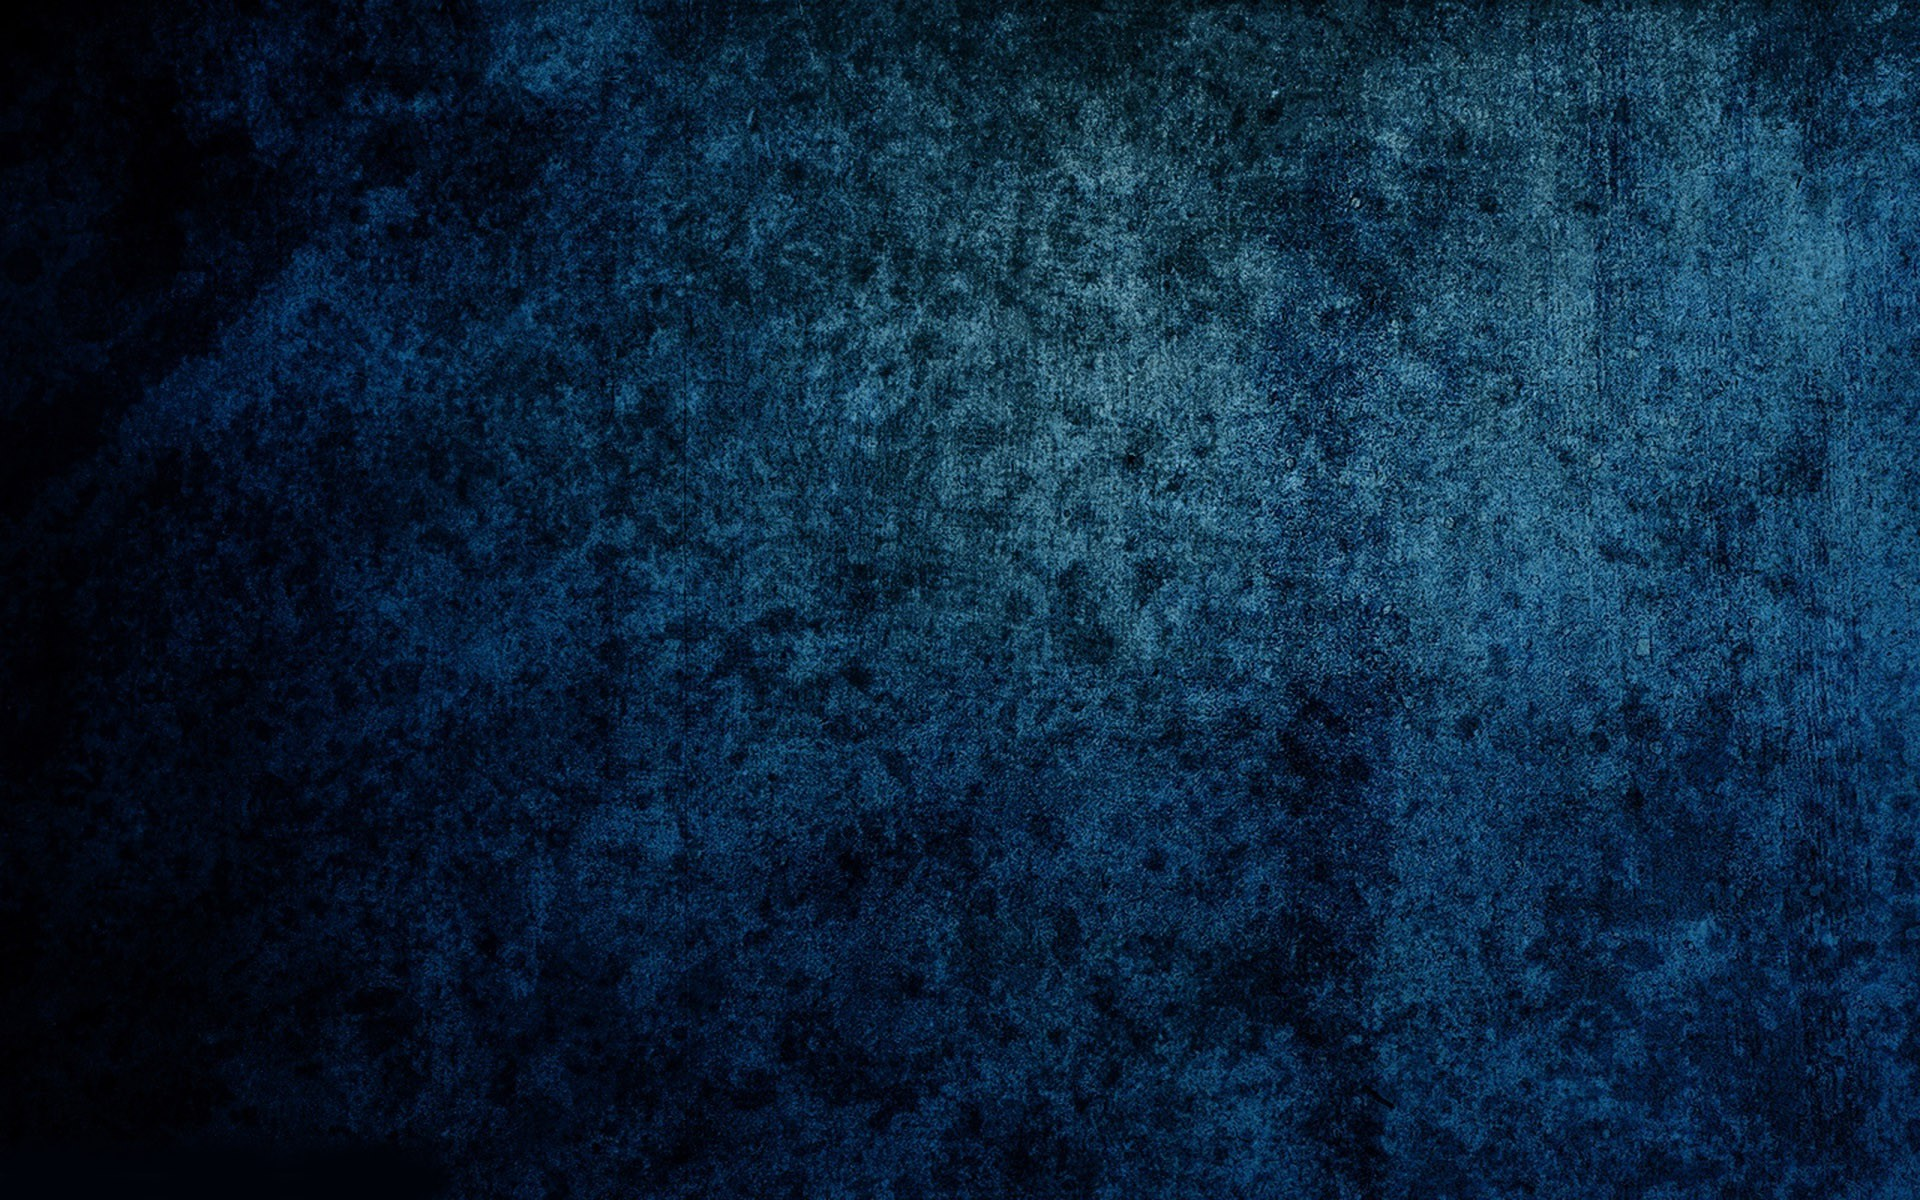 Purple grunge texture wallpaper Wallpaper Wide HD 1920x1200